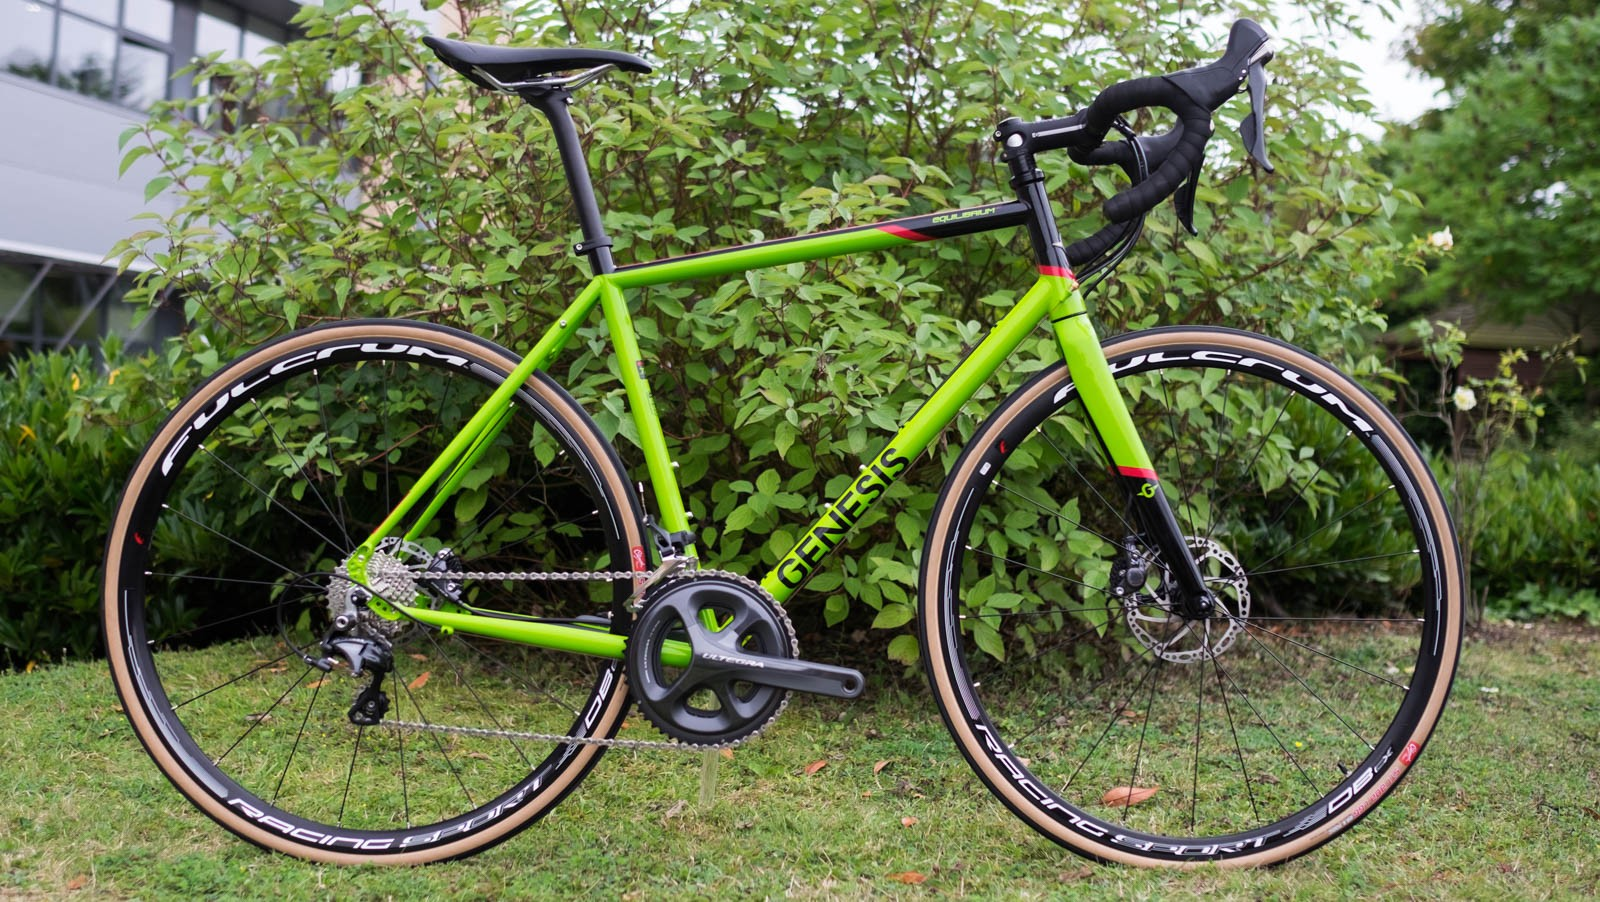 The new Genesis Equilibrium 30. Zesty, made of metal and lust-worthy